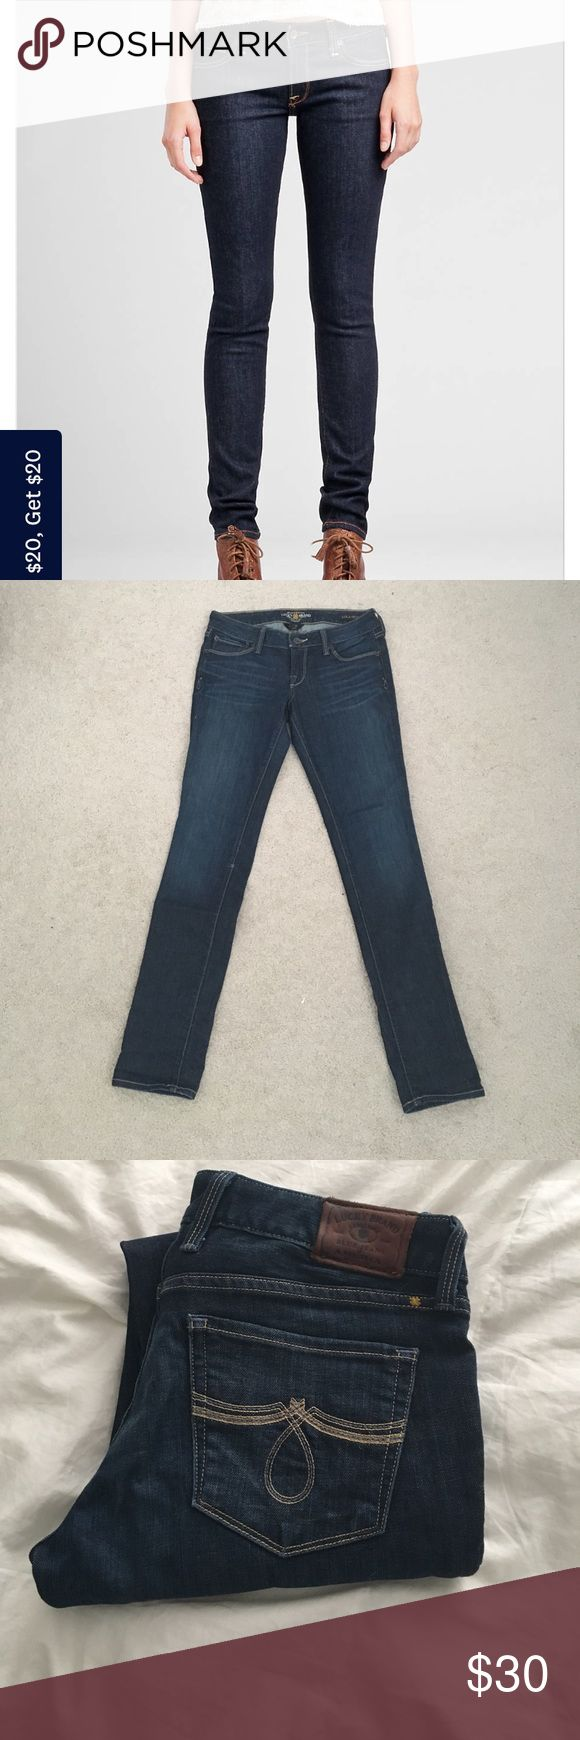 Lucky Brand skinny jeans Dark blue lucky brand skinny ankle jeans! They have been wore twice and in perfect condition! The type of jean is Lola skinny. They are size 25 or 0 Lucky Brand Jeans Skinny